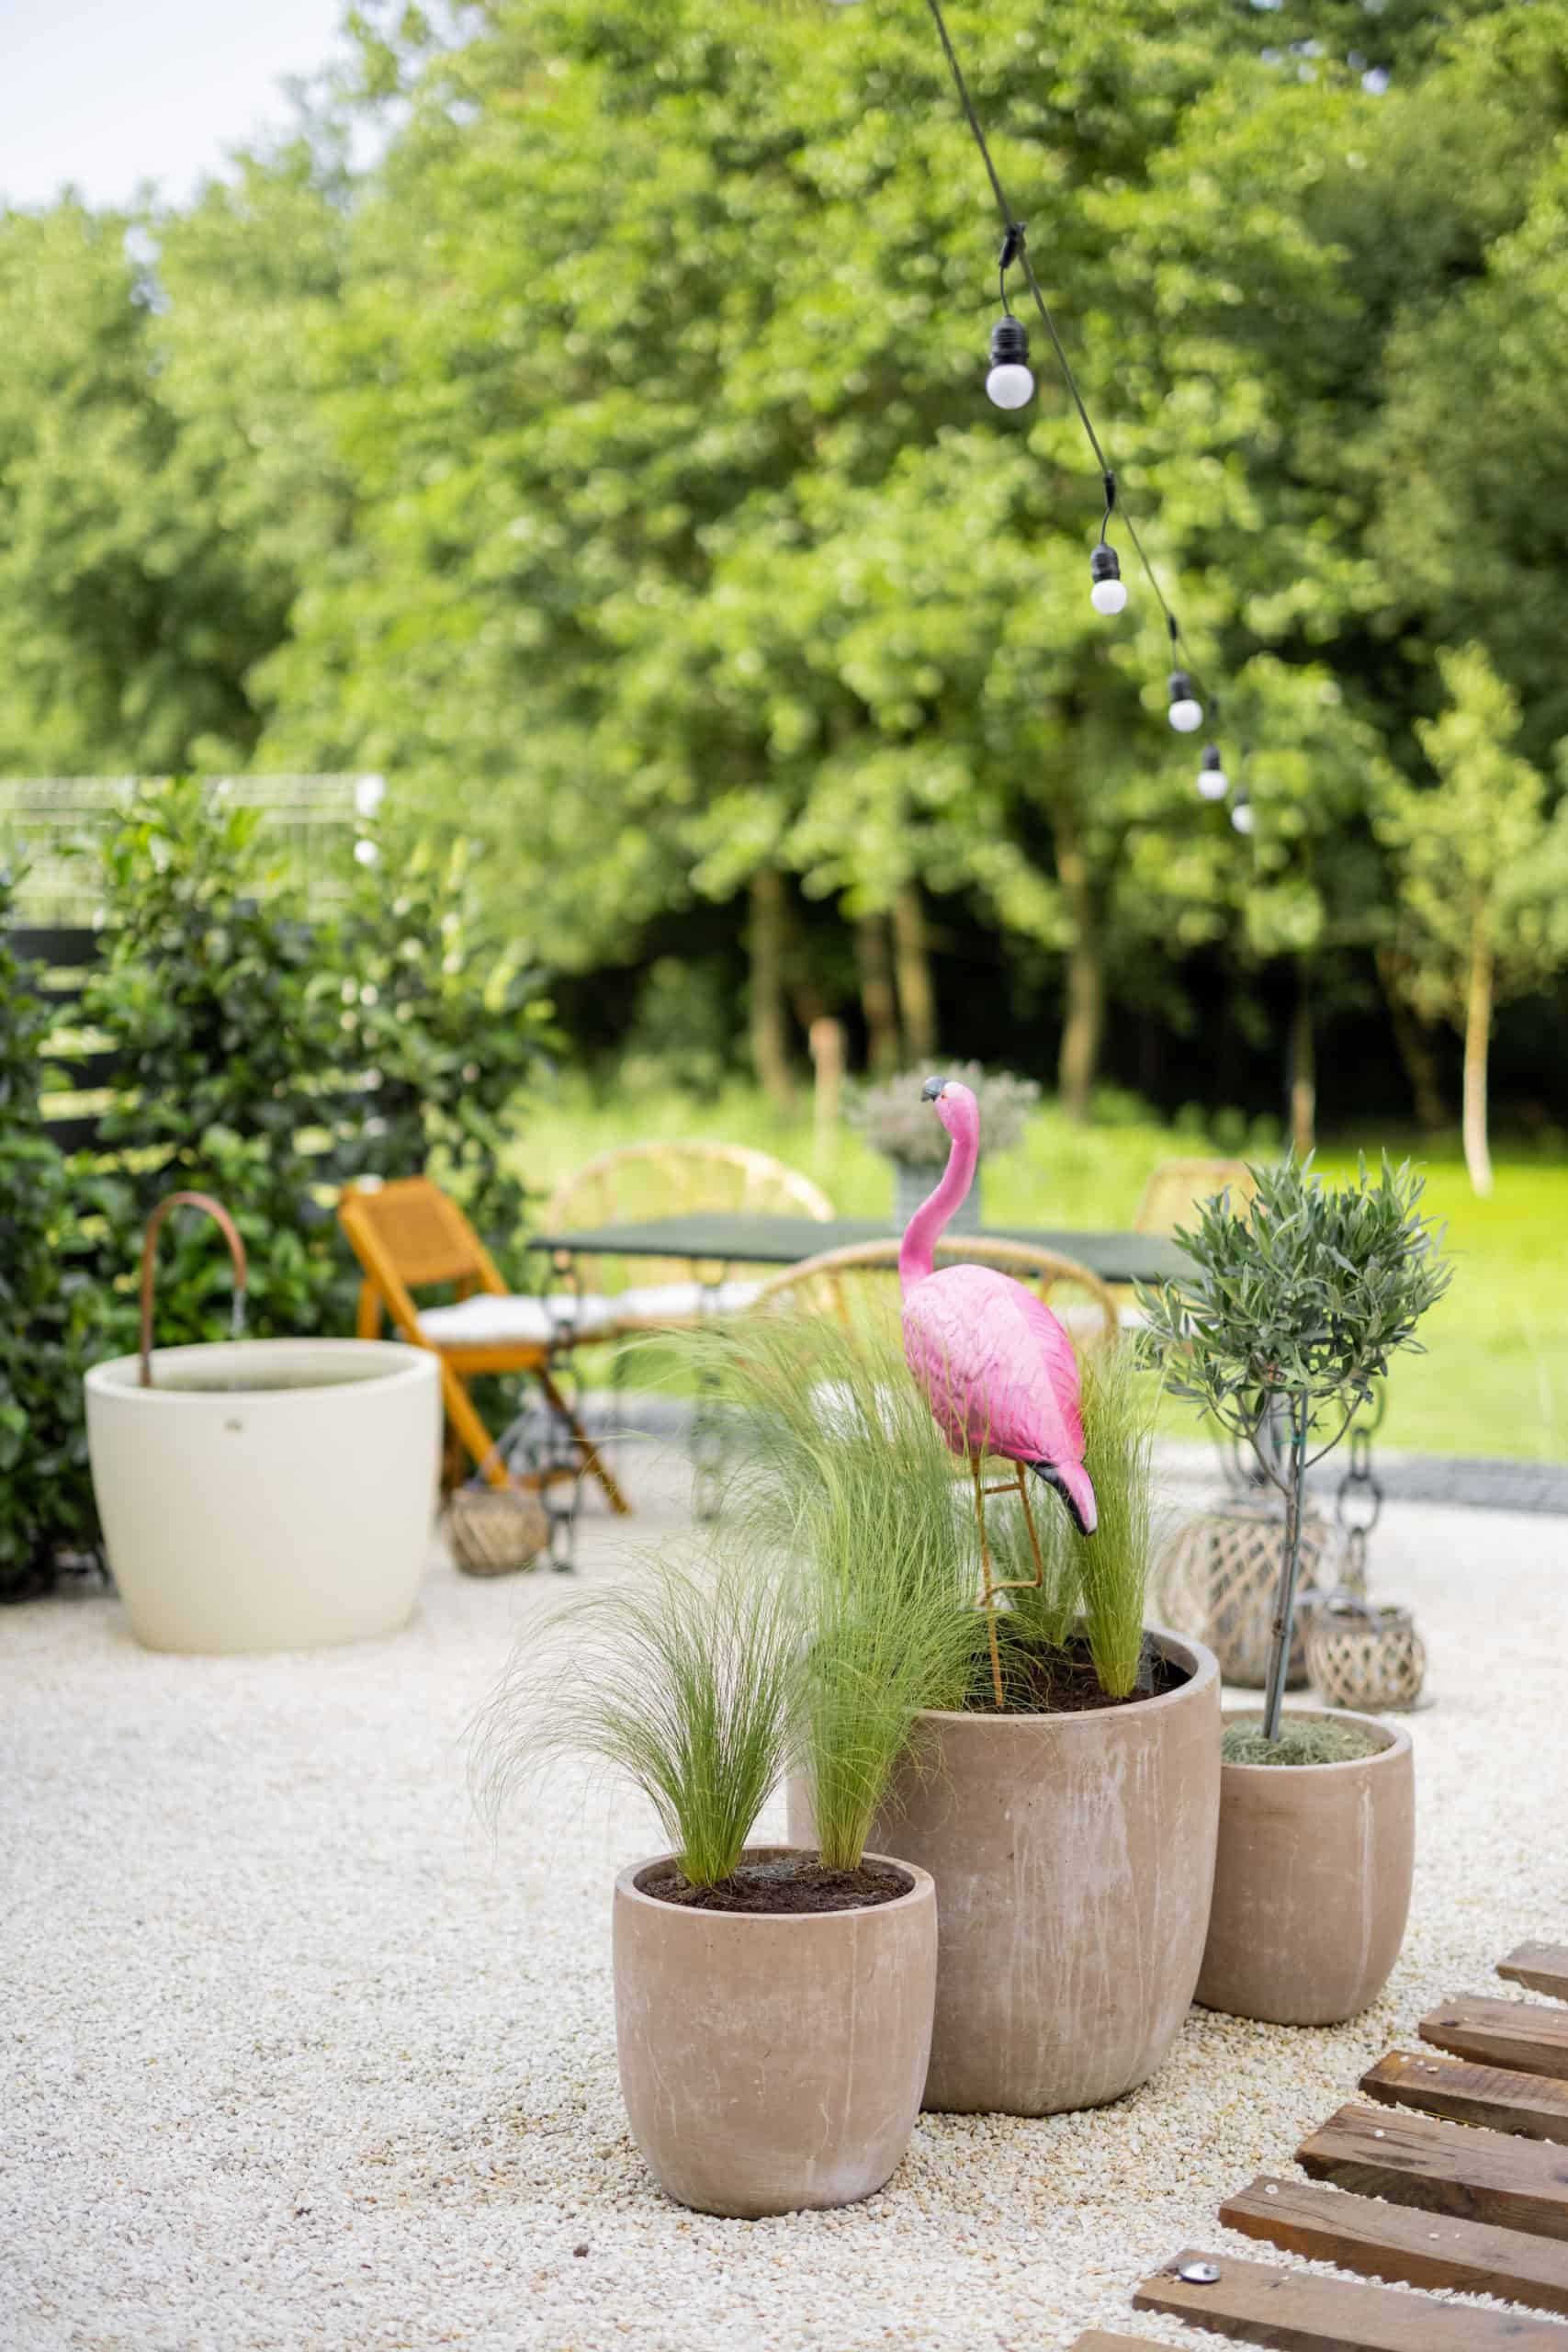 Garden Makeover On A Small Budget? Yes, You Can!